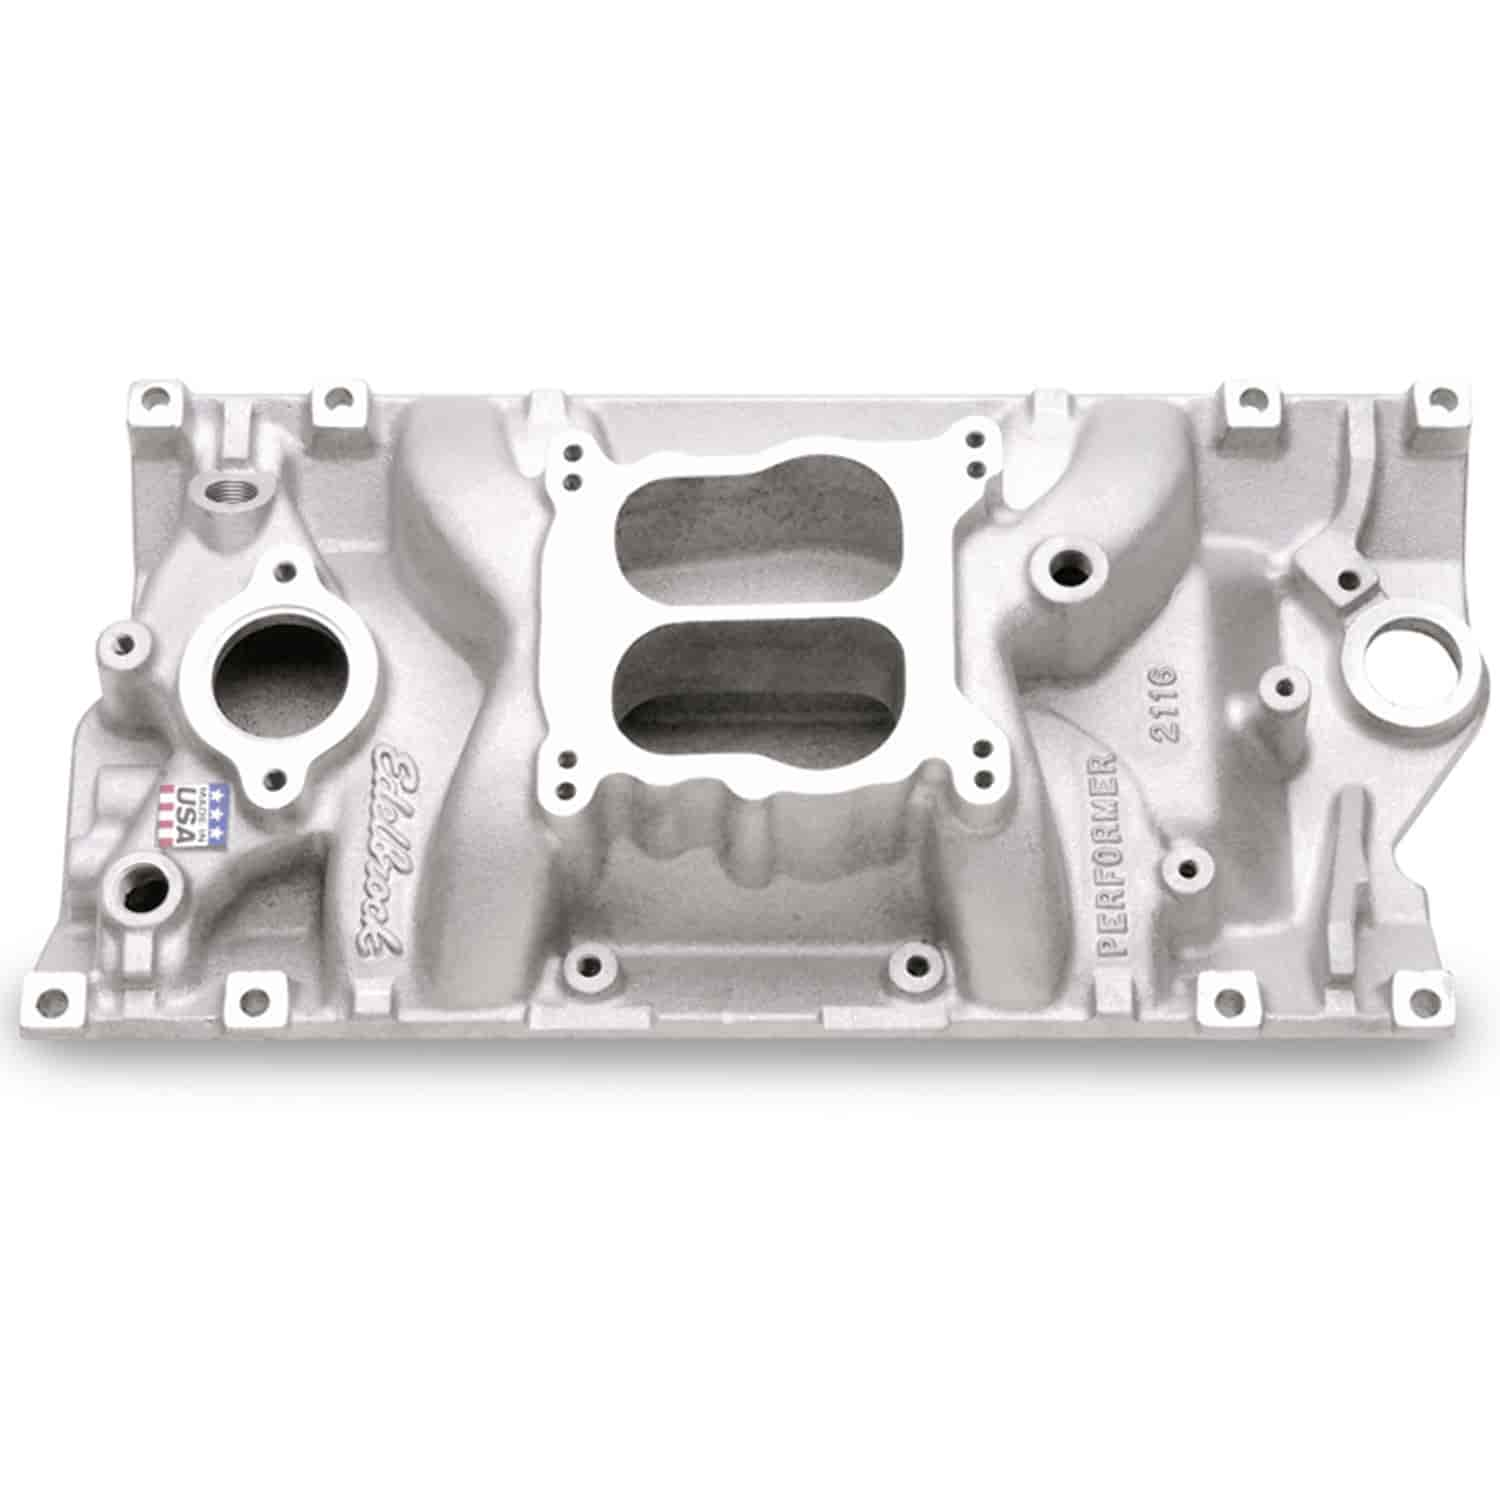 Edelbrock 2116 - Edelbrock Performer Intake Manifolds for Chevy